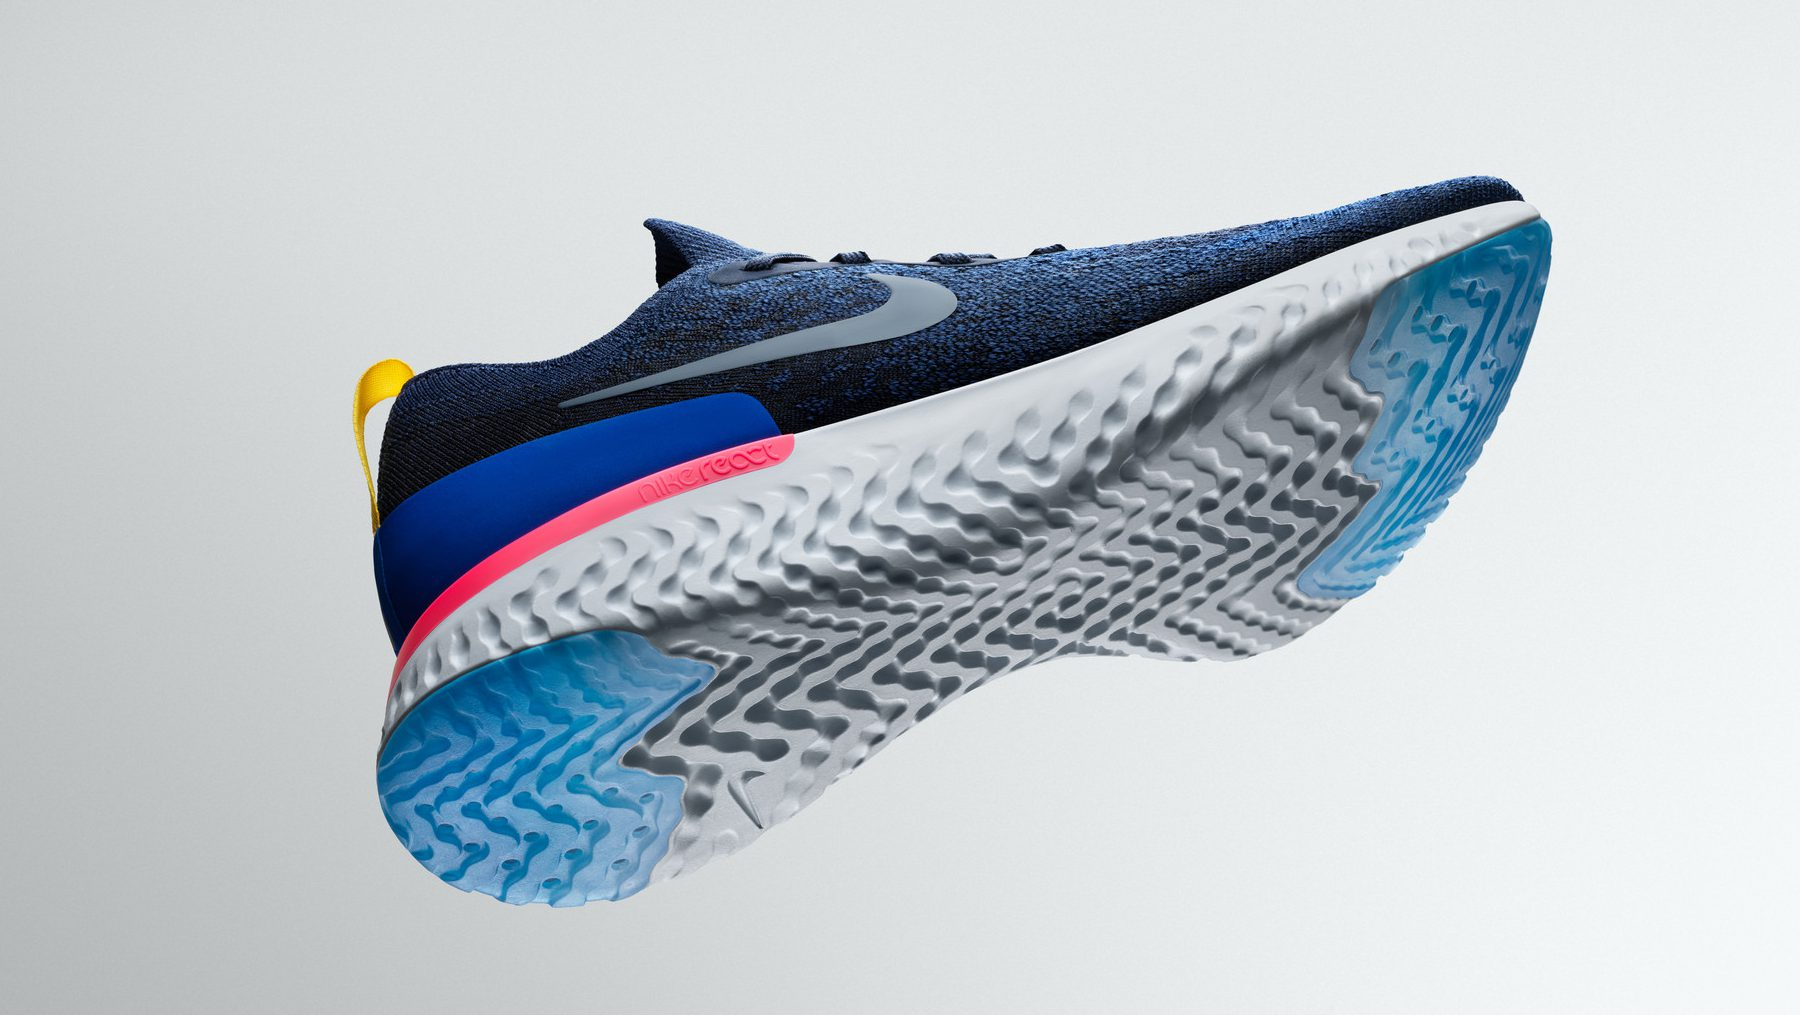 34aa65405 Nike Epic React Flyknit. Nike. The latest in insanely comfortable shoe ...